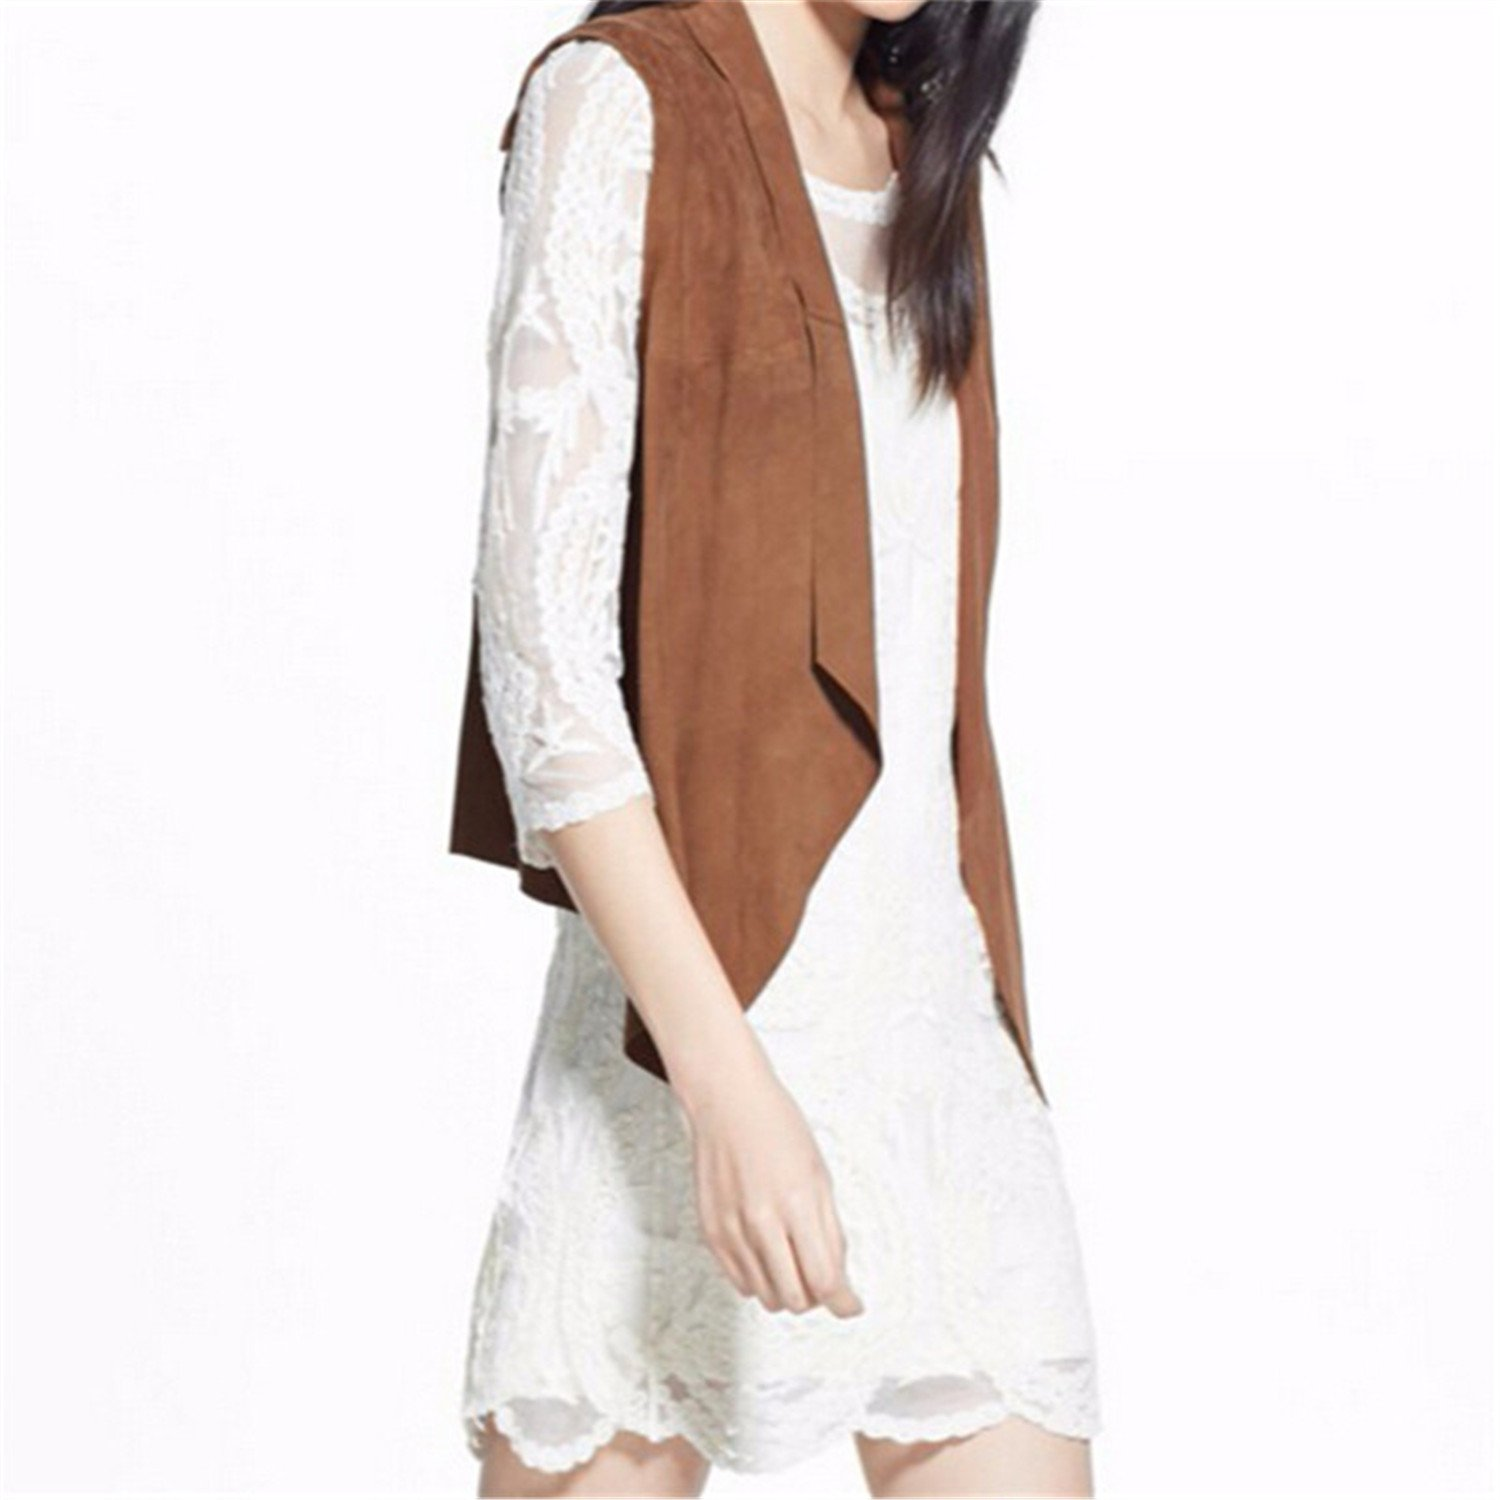 Penin Brown Suede Solid Turn Down Collar Fashion New Sleeveless Jacket Vests Of Women Autumn Sumer Plus Size Female Vest Brown Colete Feminin 7Xl at Amazon ...